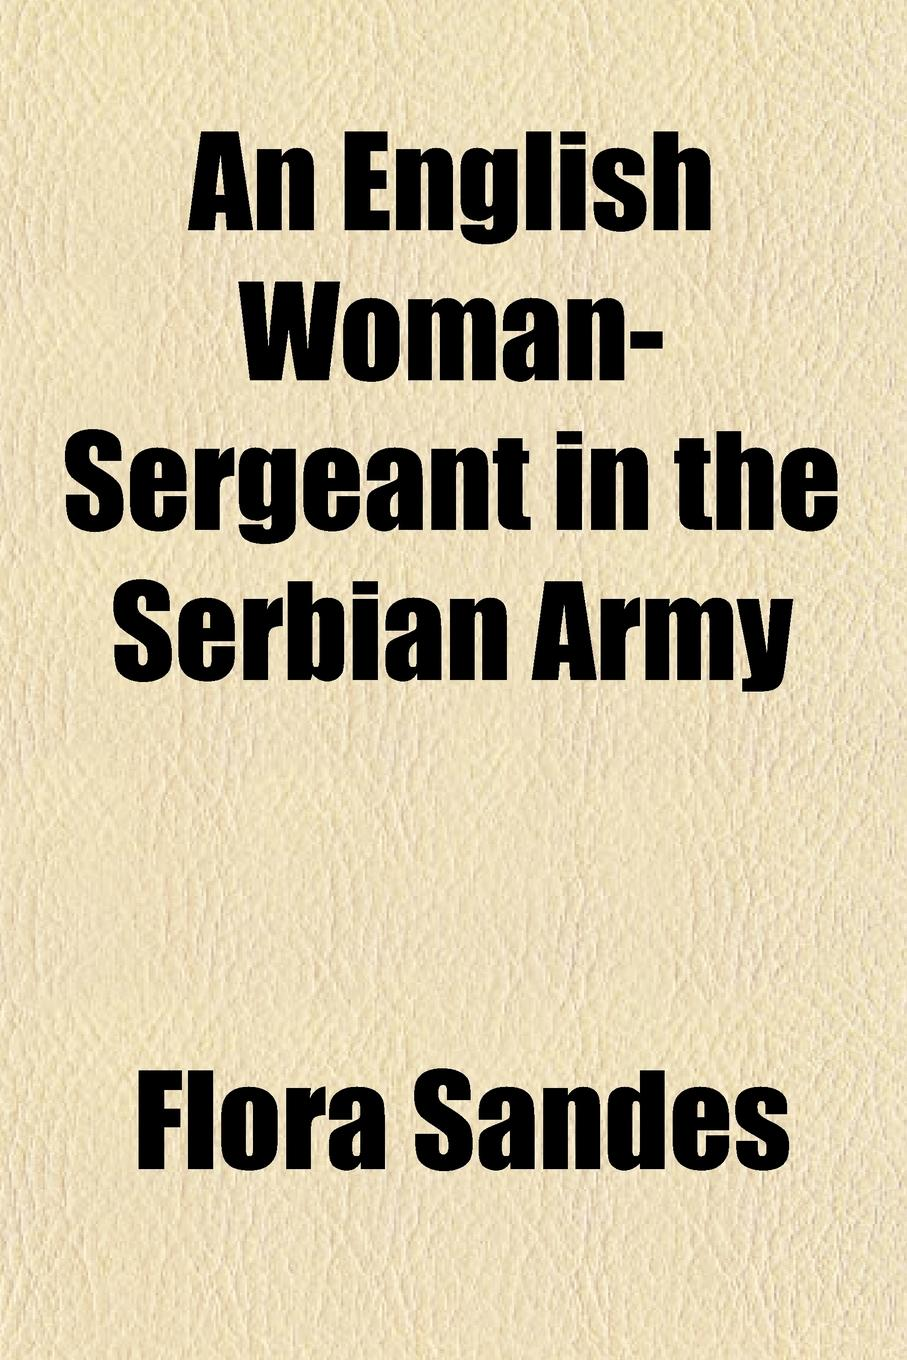 Flora Sandes An English Woman-Sergeant in the Serbian Army flora sandes an english woman sergeant in the serbian army